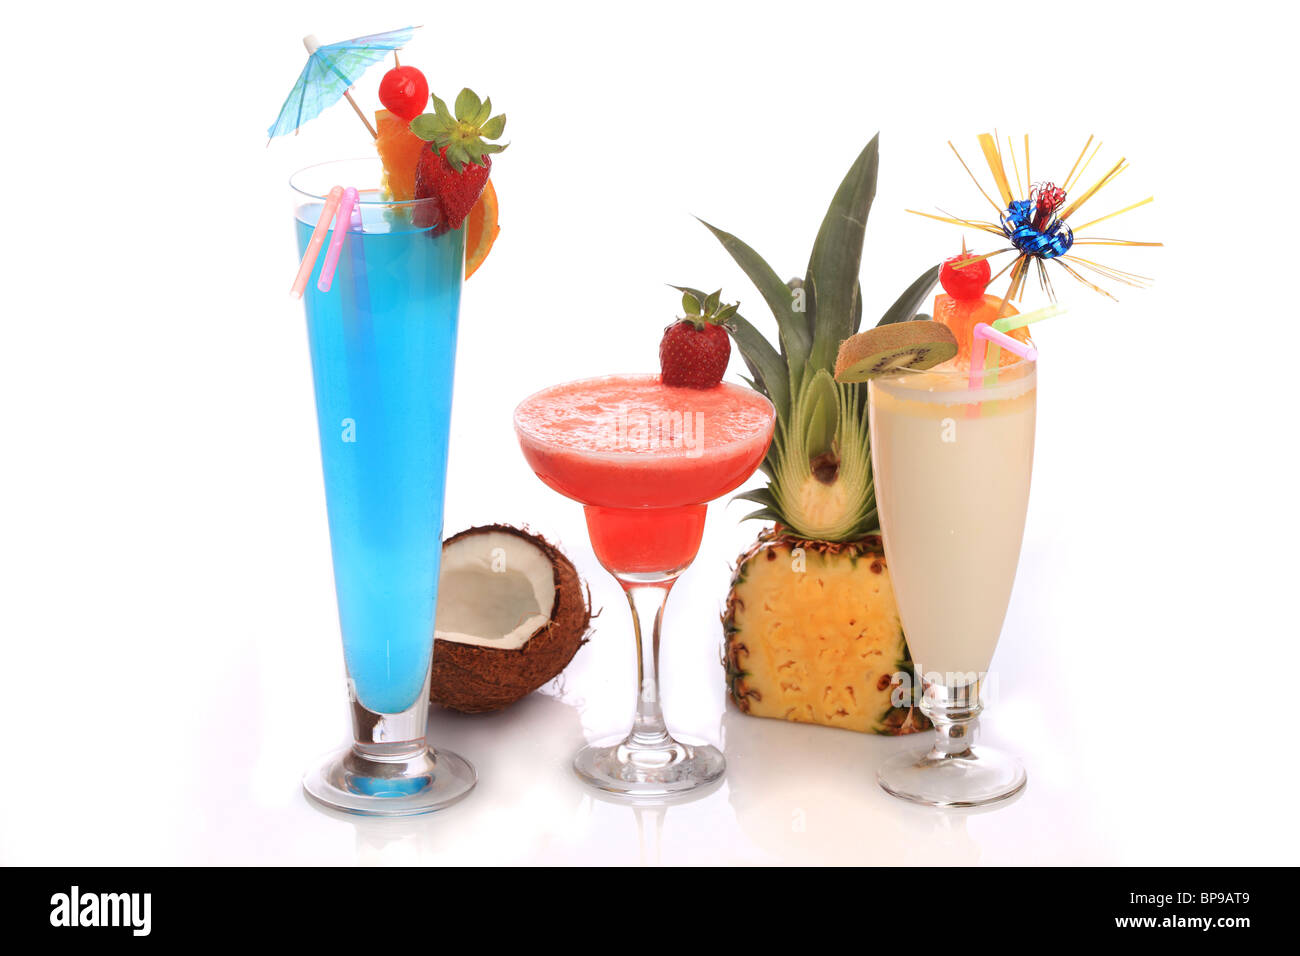 Decorated cocktails (Pina Colada, Strawberry Margarita and Blue Lagoon) over white background. - Stock Image